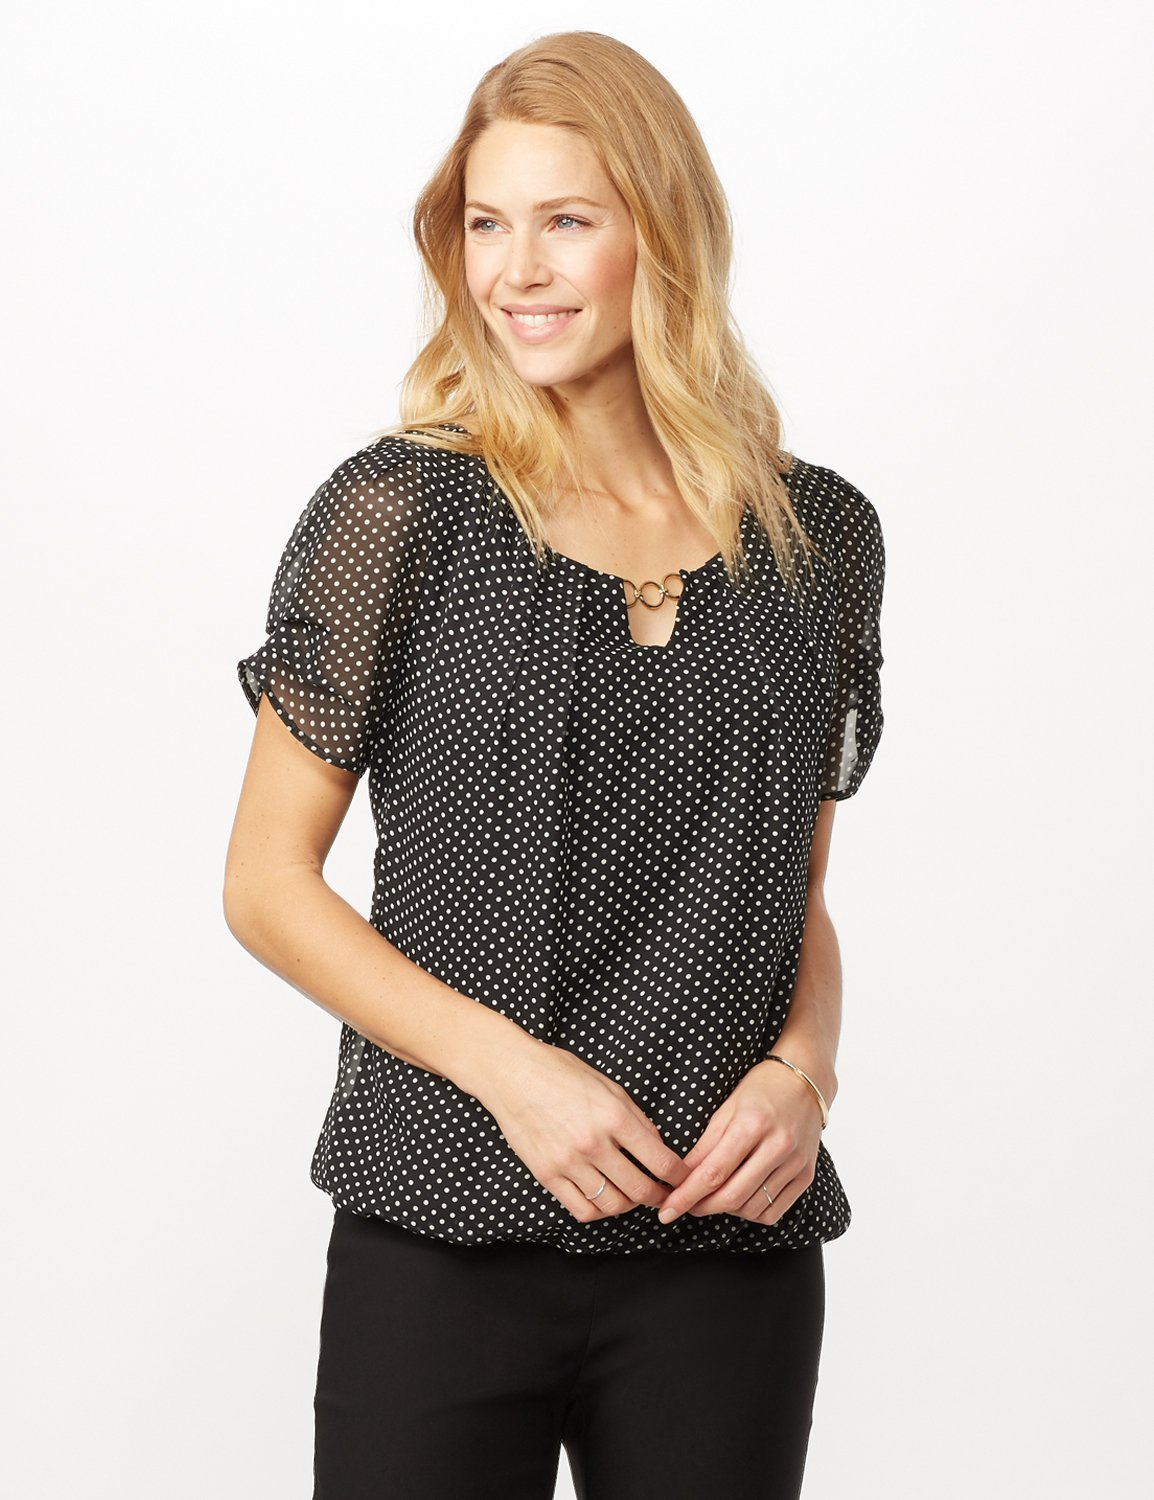 Short Sleeve Dotted Woven Top with Three Ring Chain -Black/white - Front